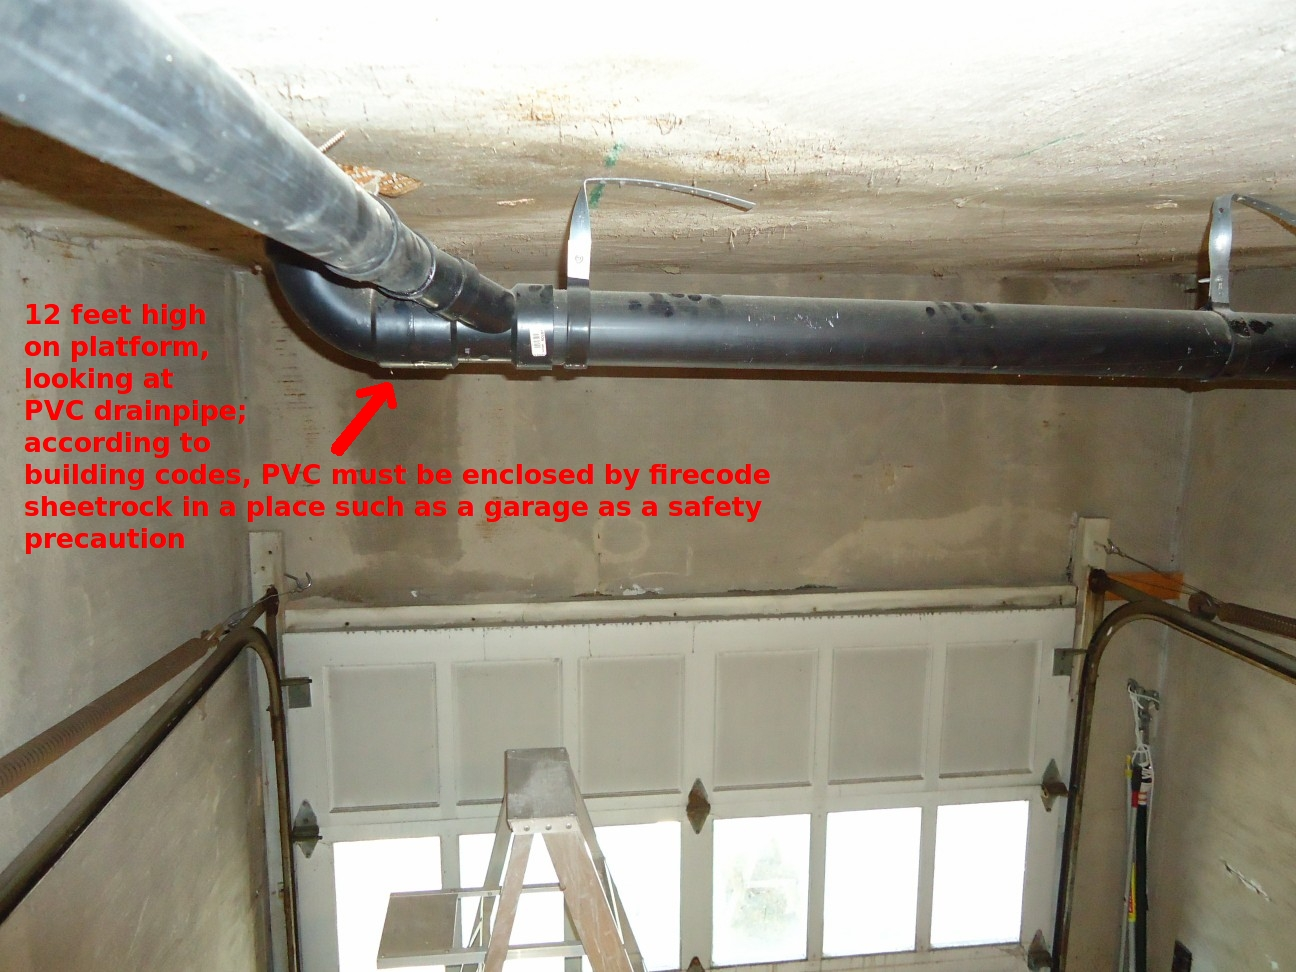 FileHandyman project -- View of exposed PVC drain pipe in garage from scaffolding & File:Handyman project -- View of exposed PVC drain pipe in garage ...